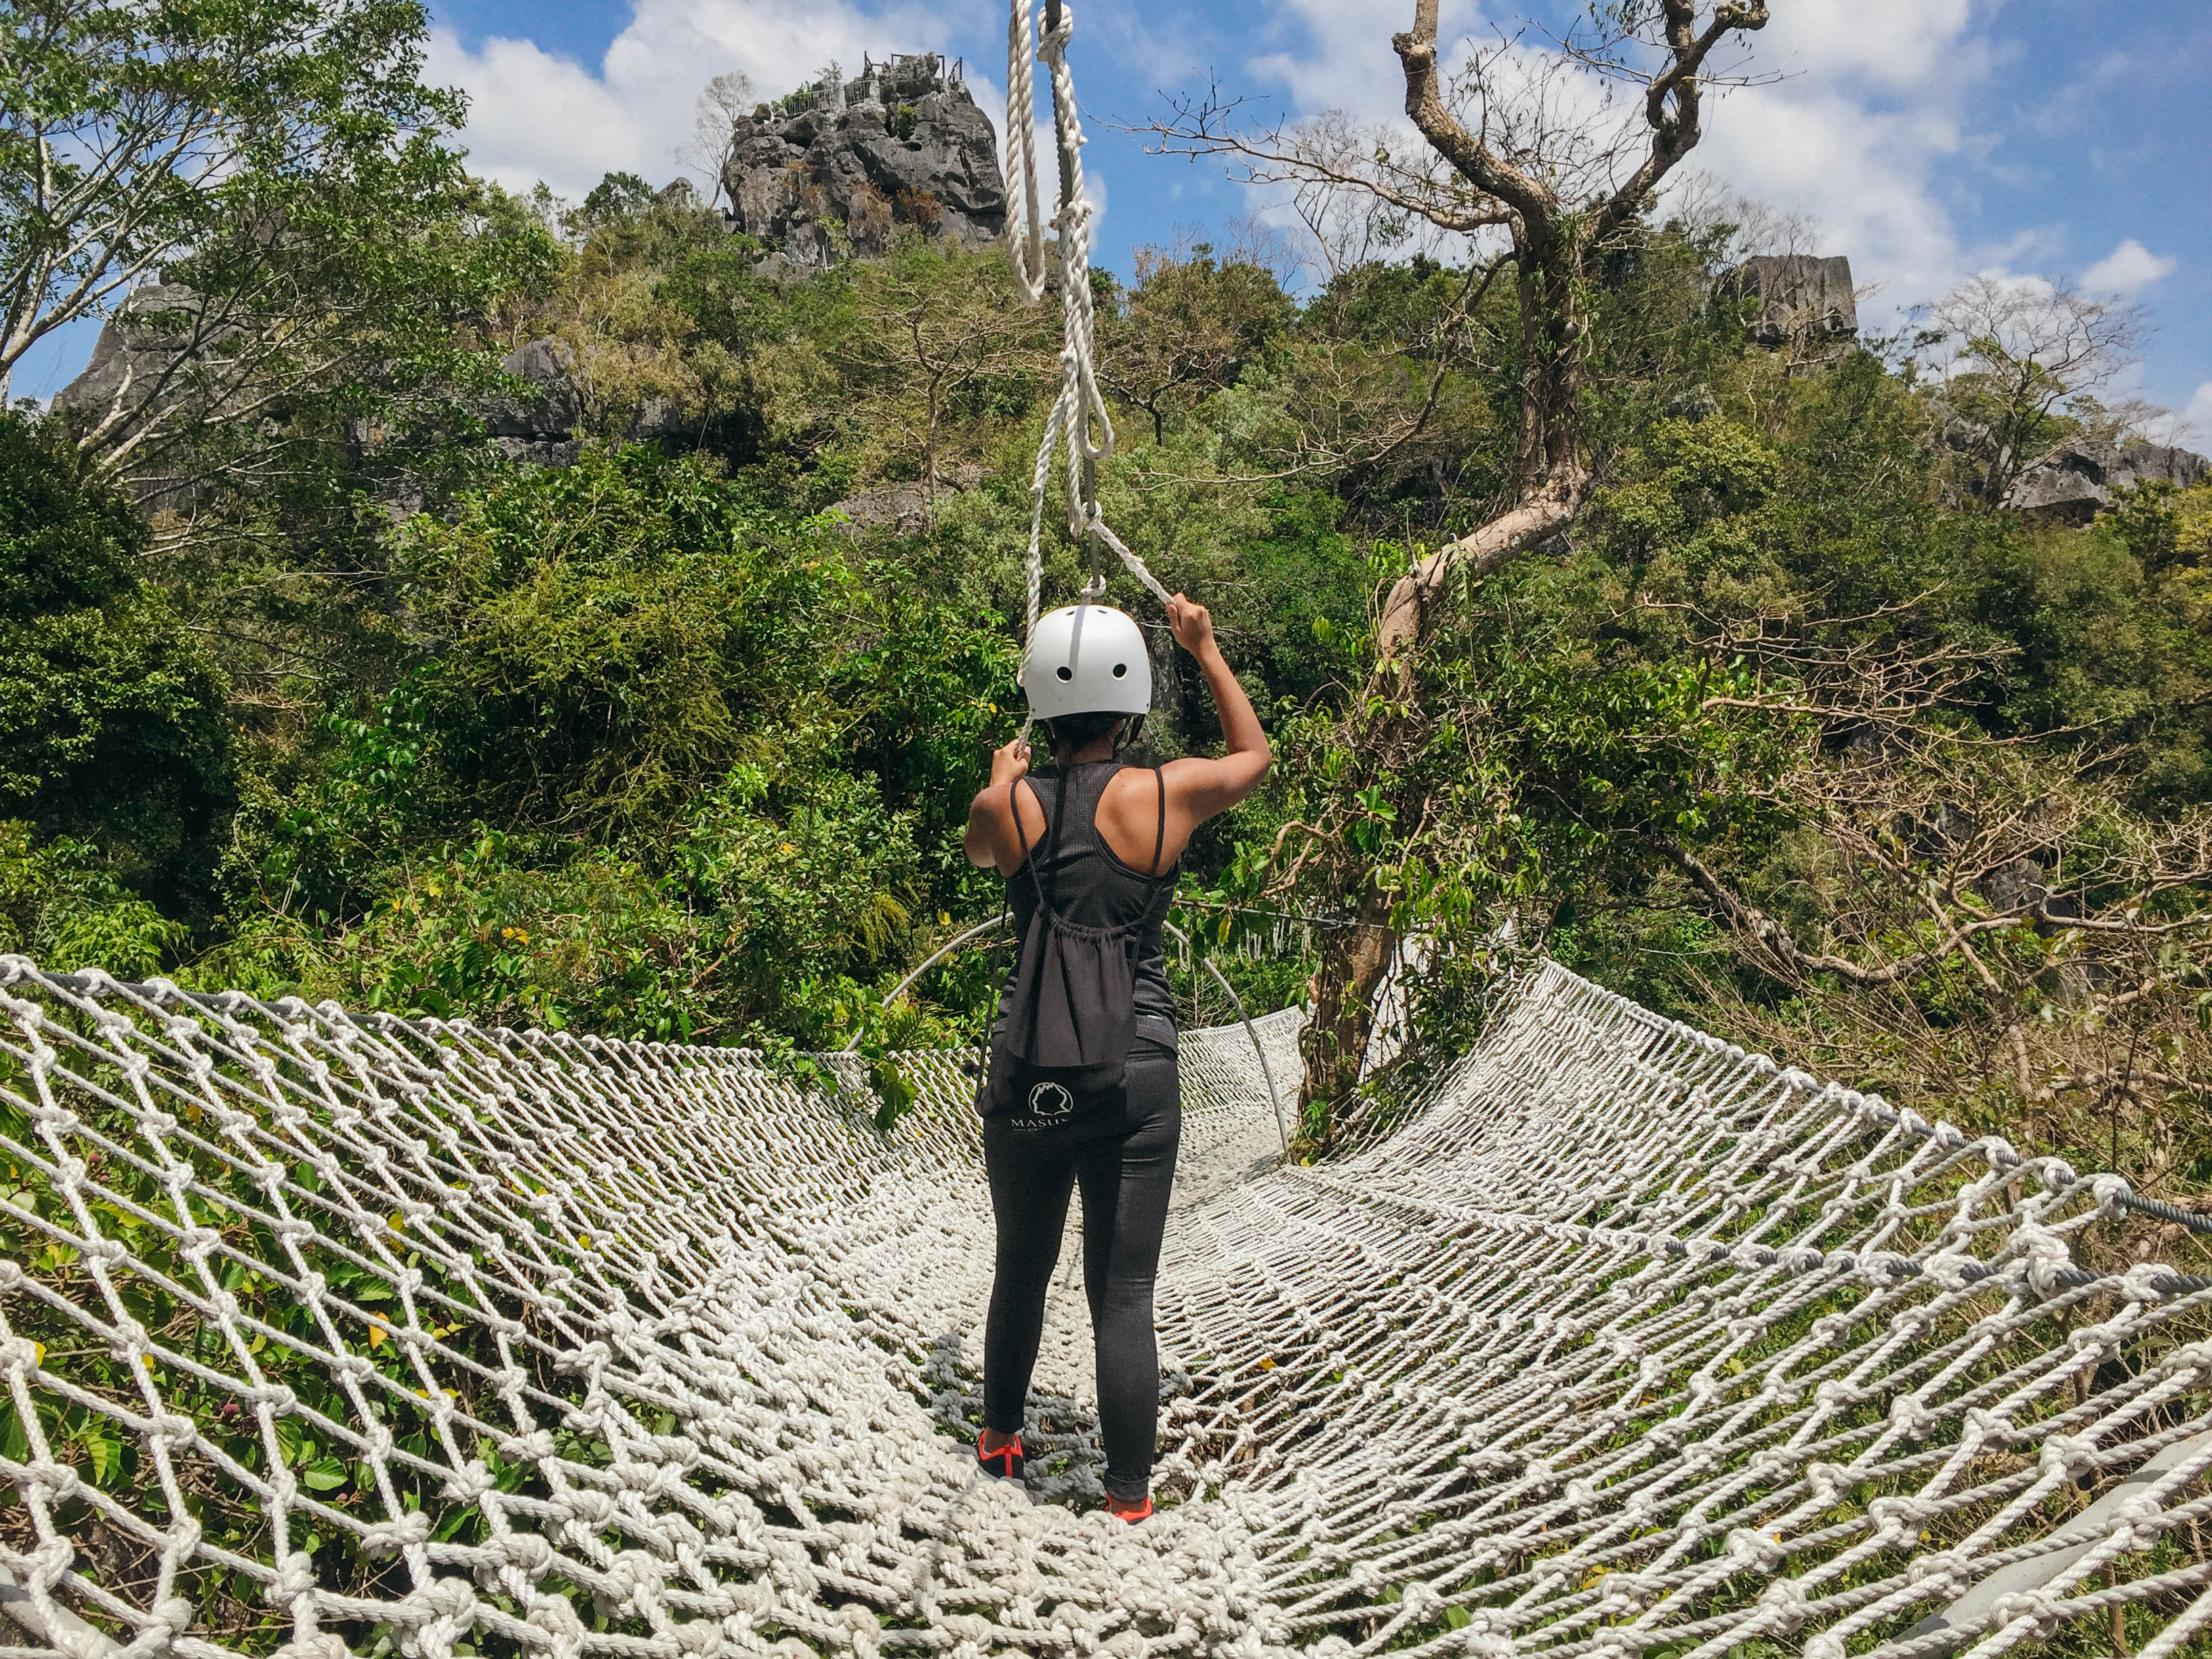 DUYAN. A giant rope hammock, Duyan is one of Masungiu00e2u0080u0099s most photographed rope courses. Photo by Nicole Reyes/Rappler